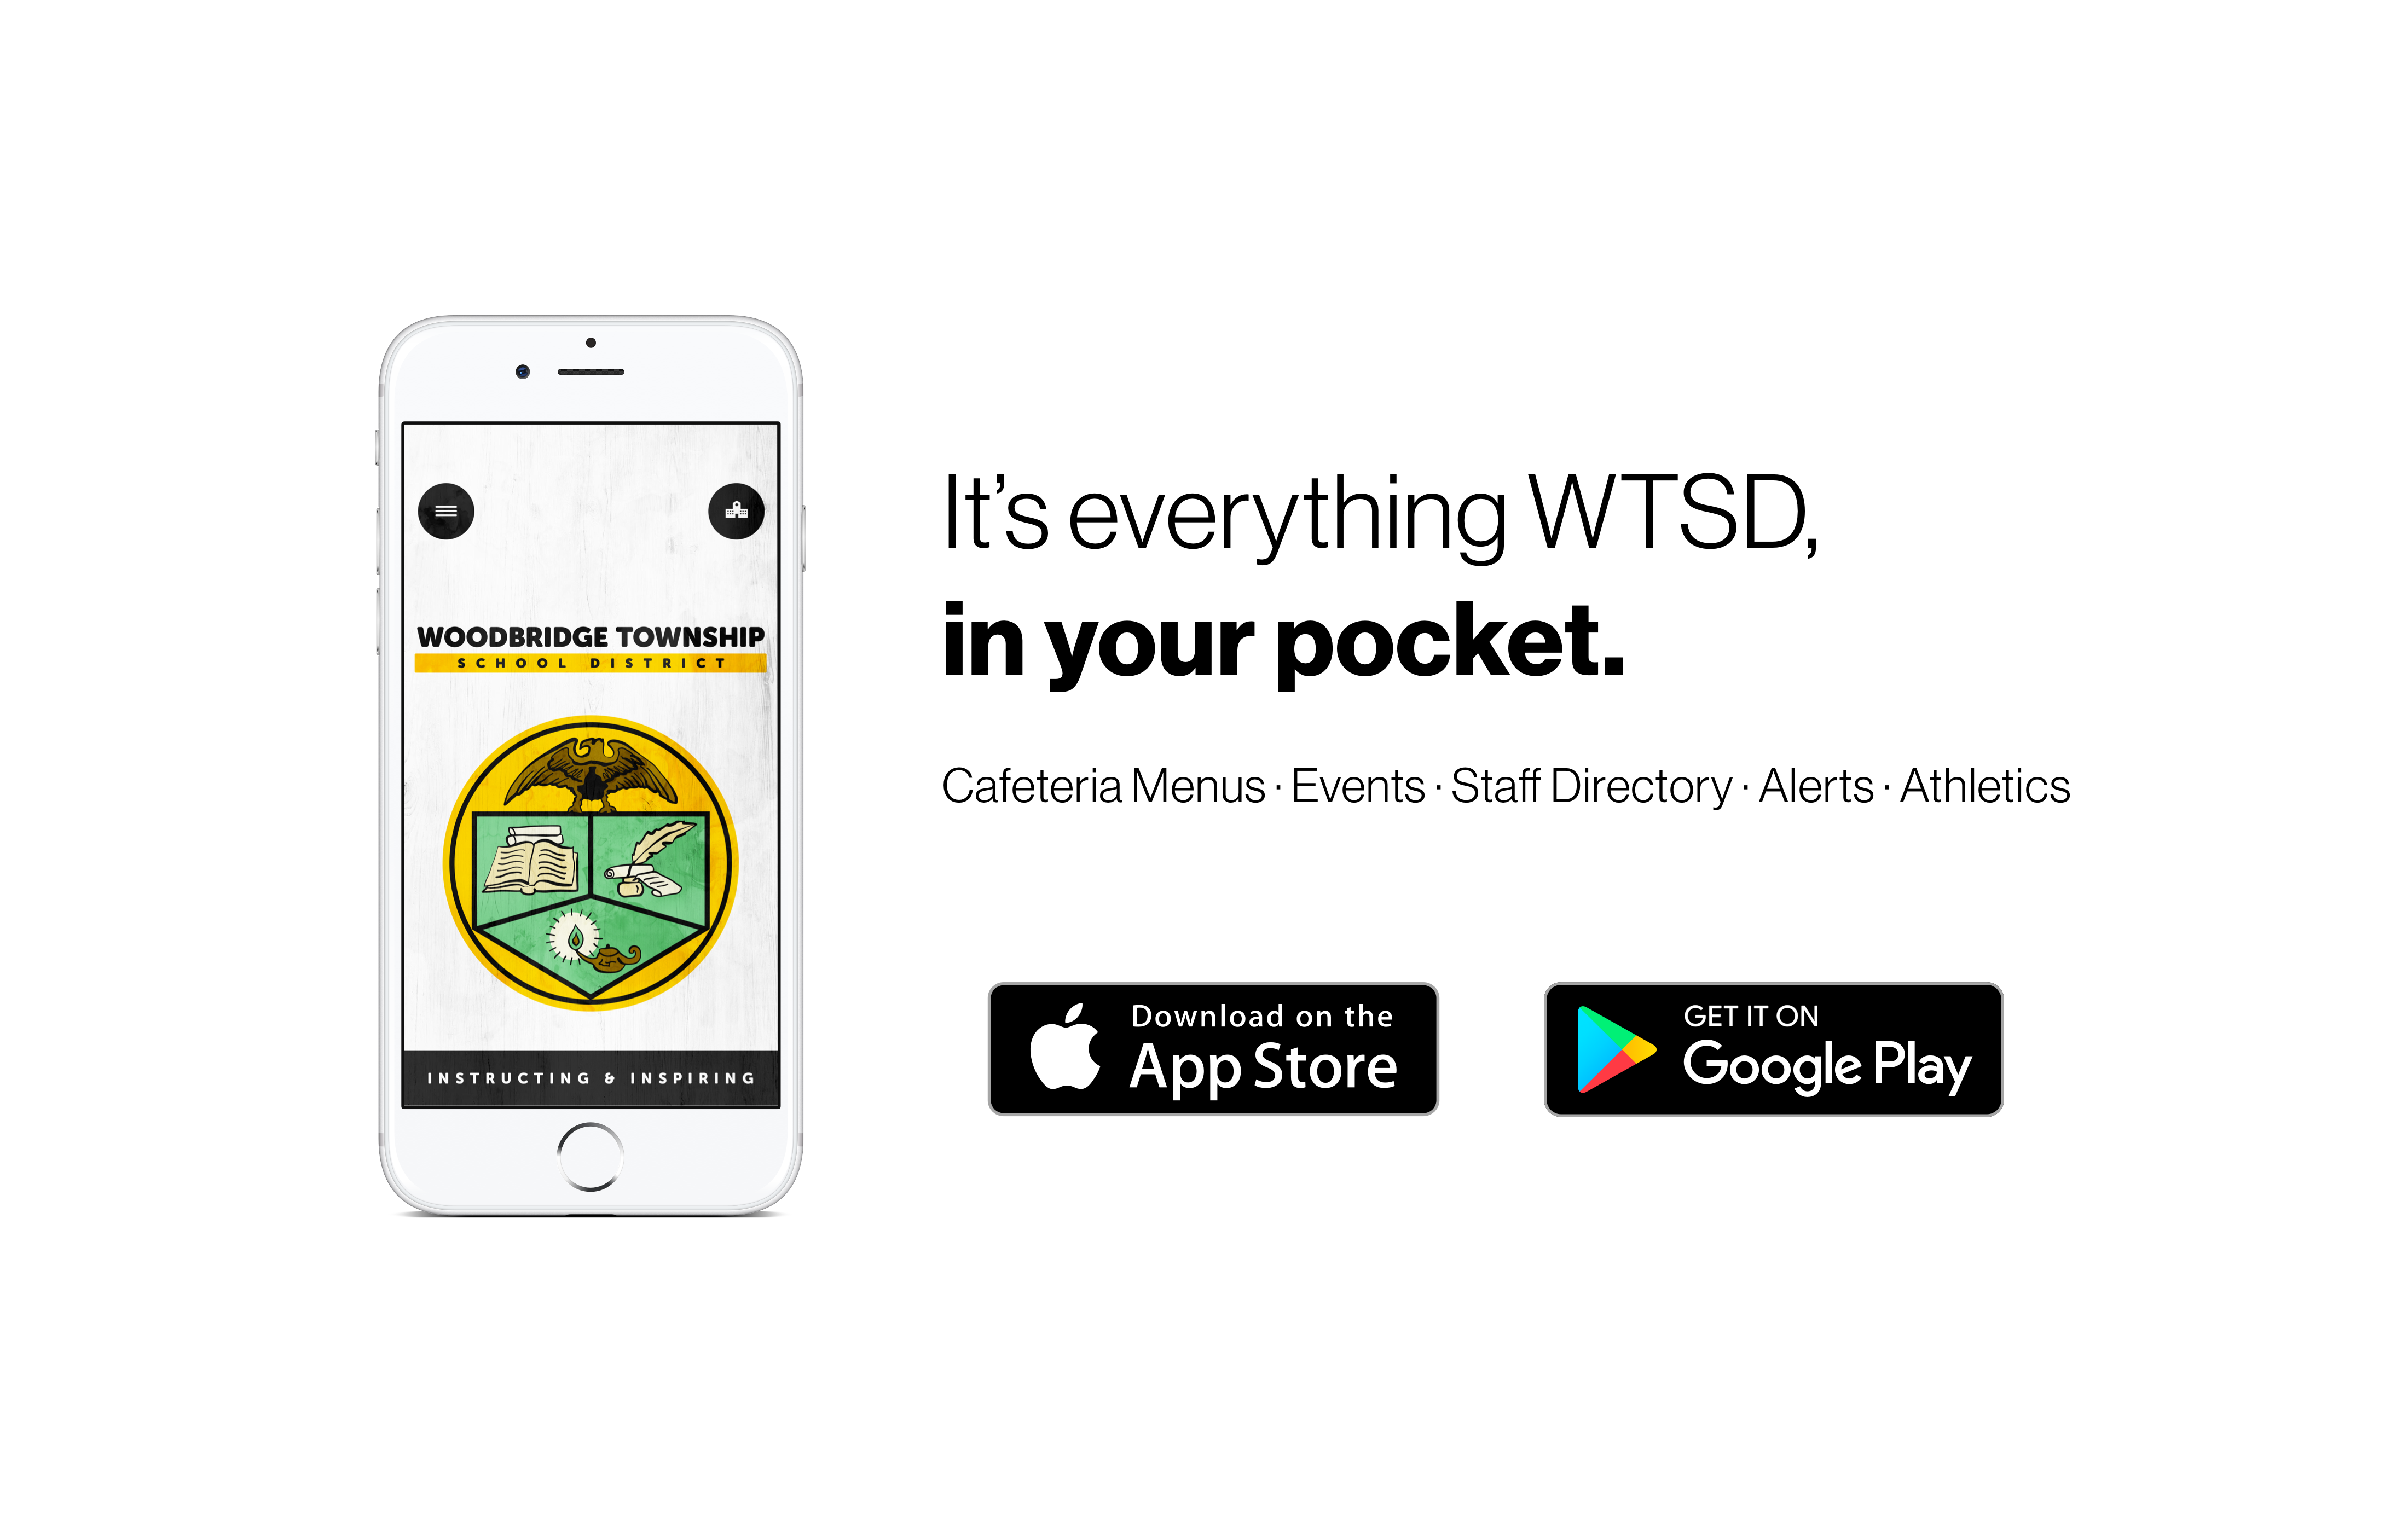 It's everything WTSD, in your pocket.